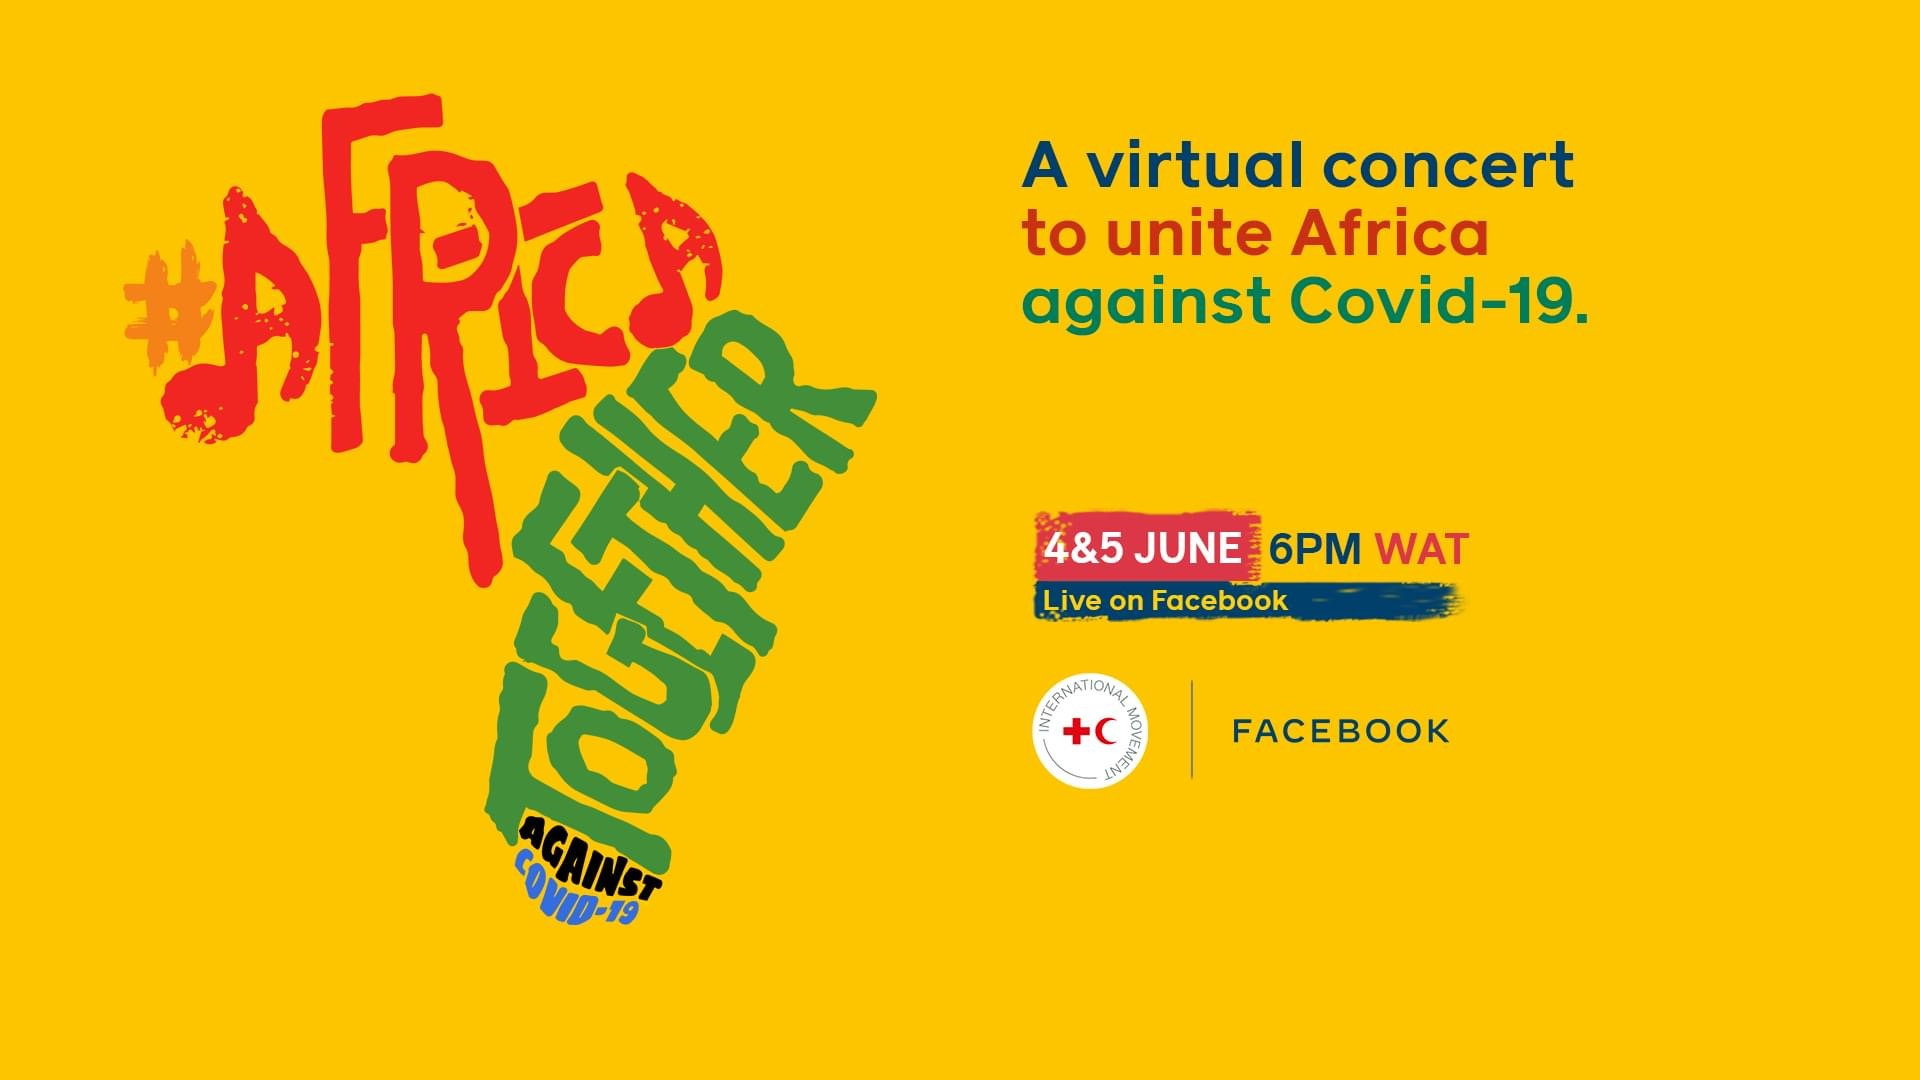 International Committee of the Red Cross & International Federation of Red Cross and Red Crescent Societies to unite Africa against Covid-19